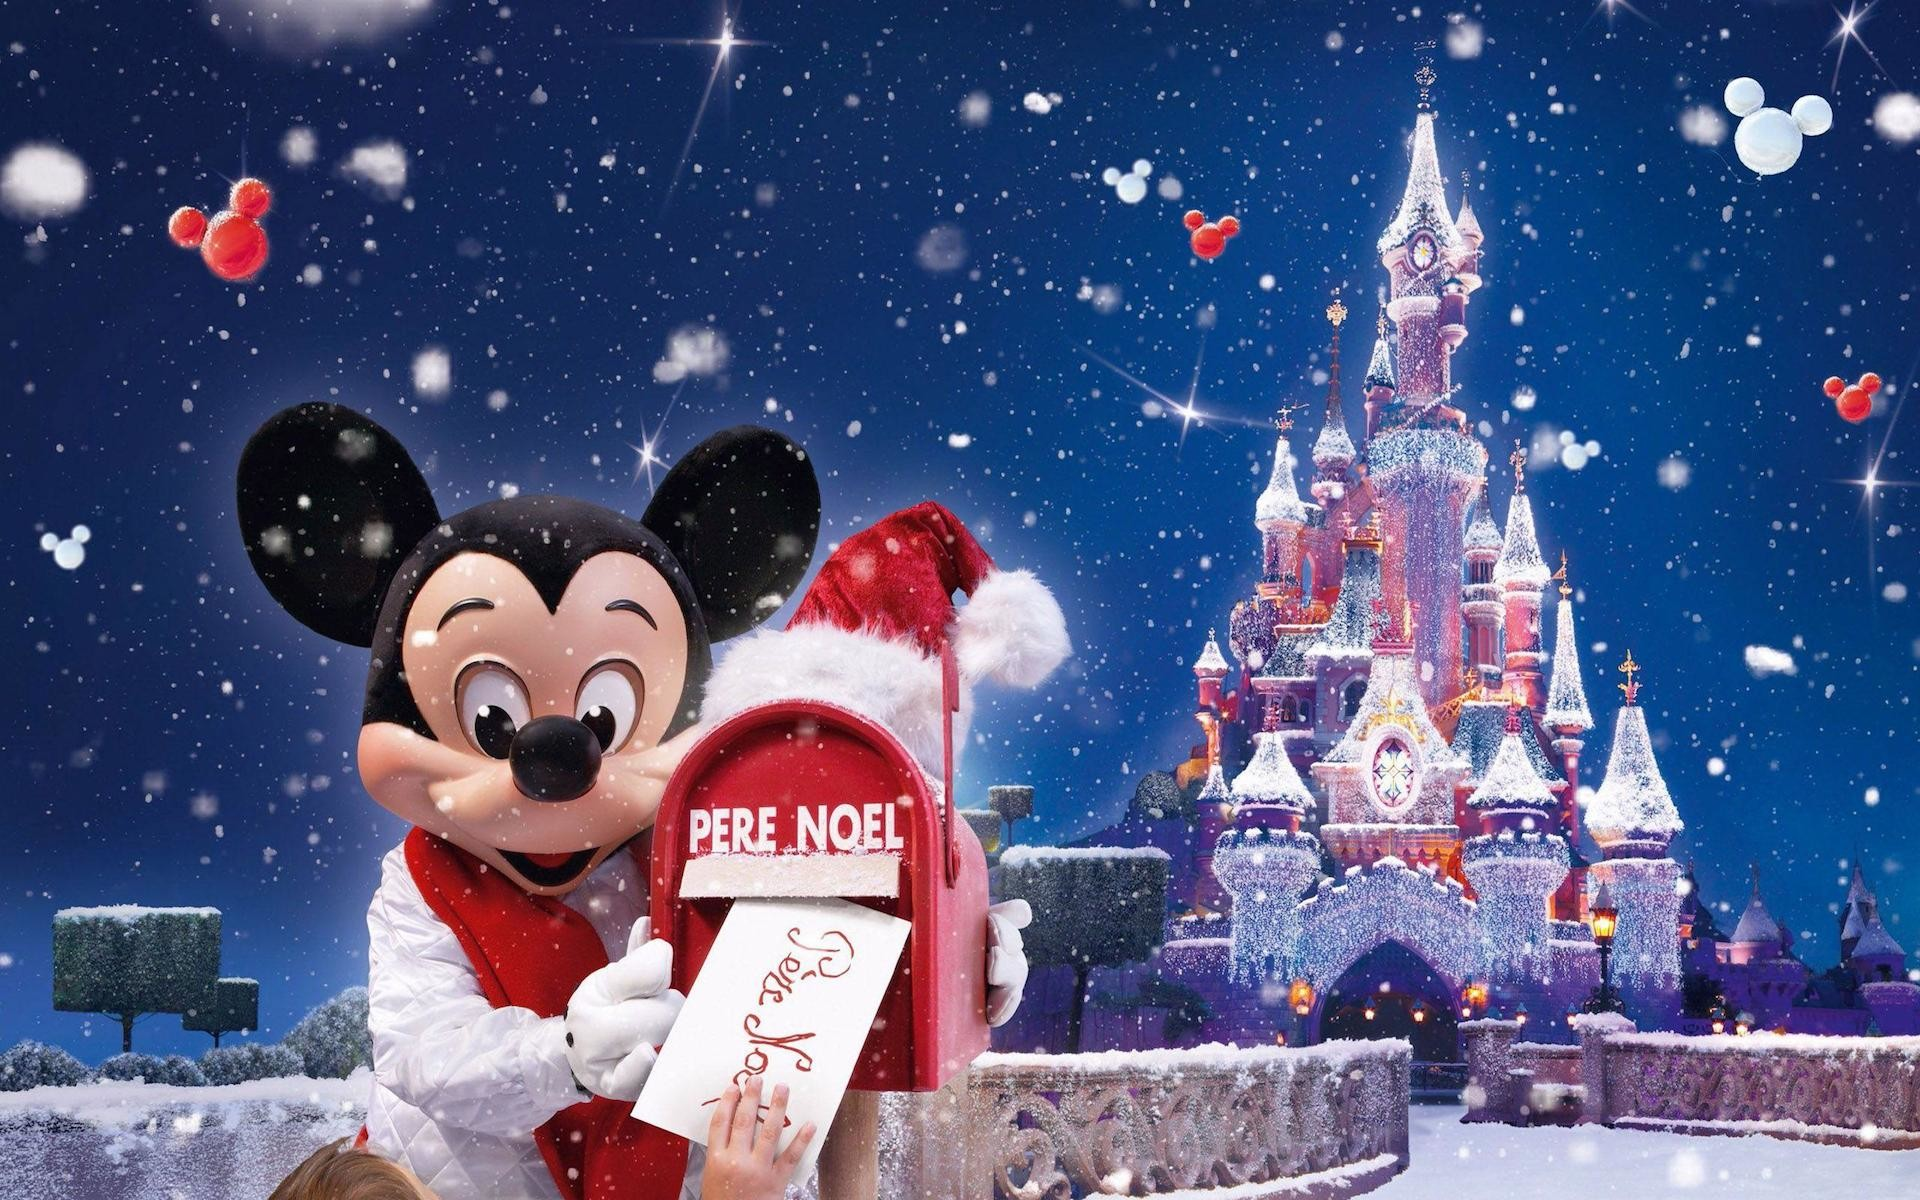 1920x1200 Disney-Mickey-Mouse-Christmas-HD-Wallpaper